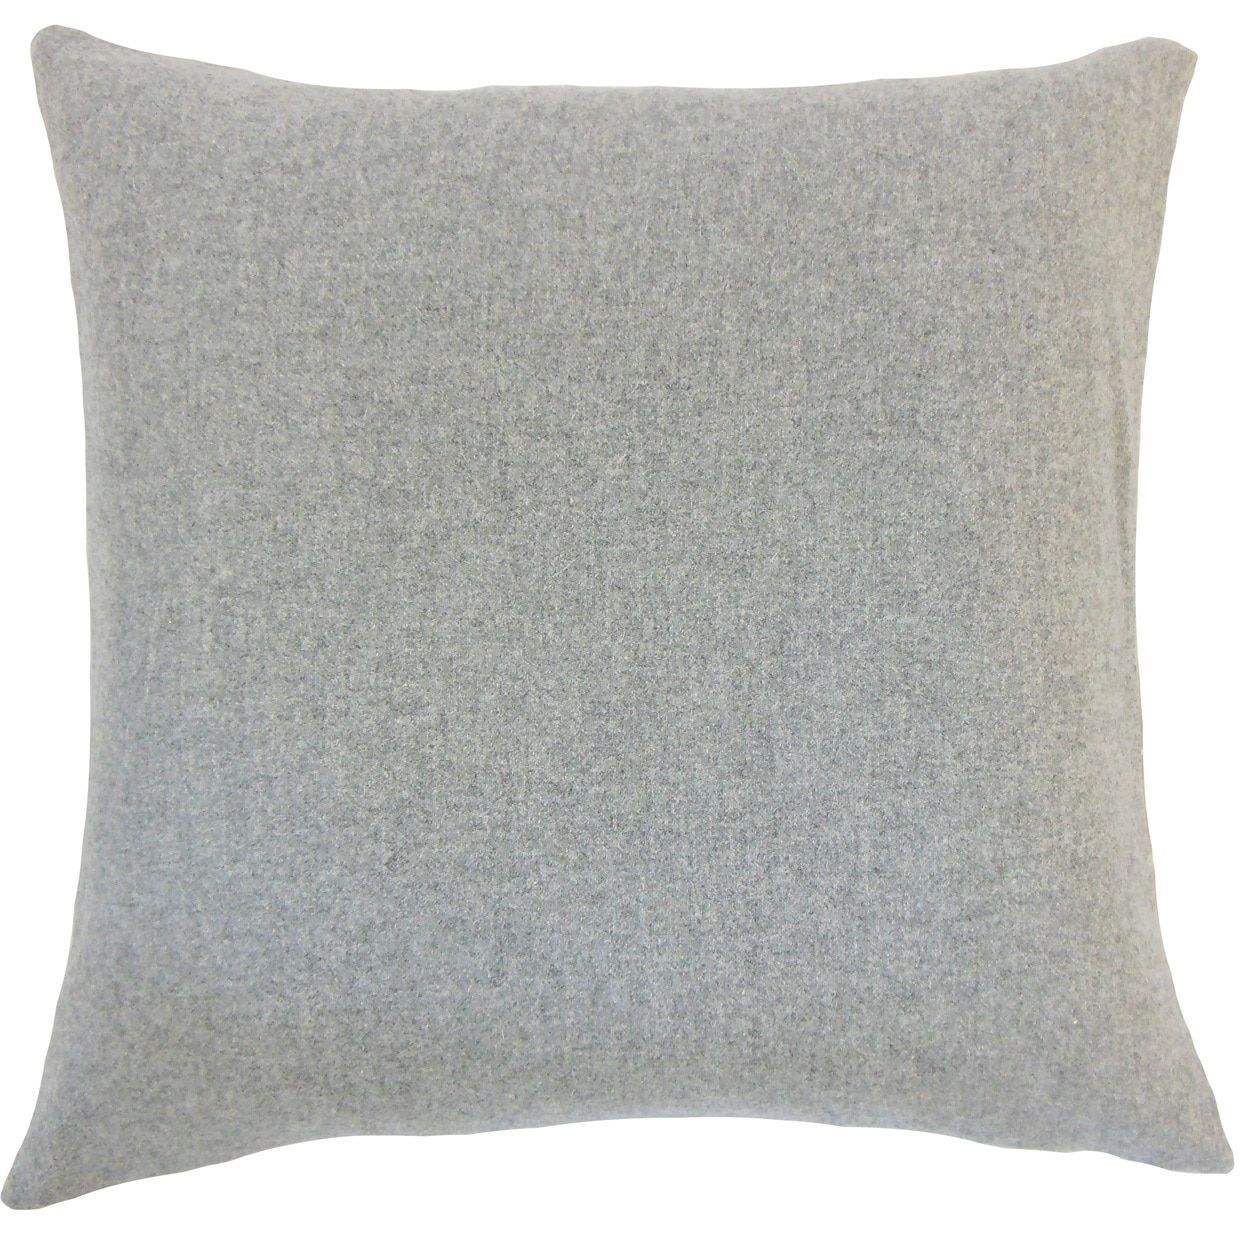 Eire solid inch down feather throw pillow products pinterest